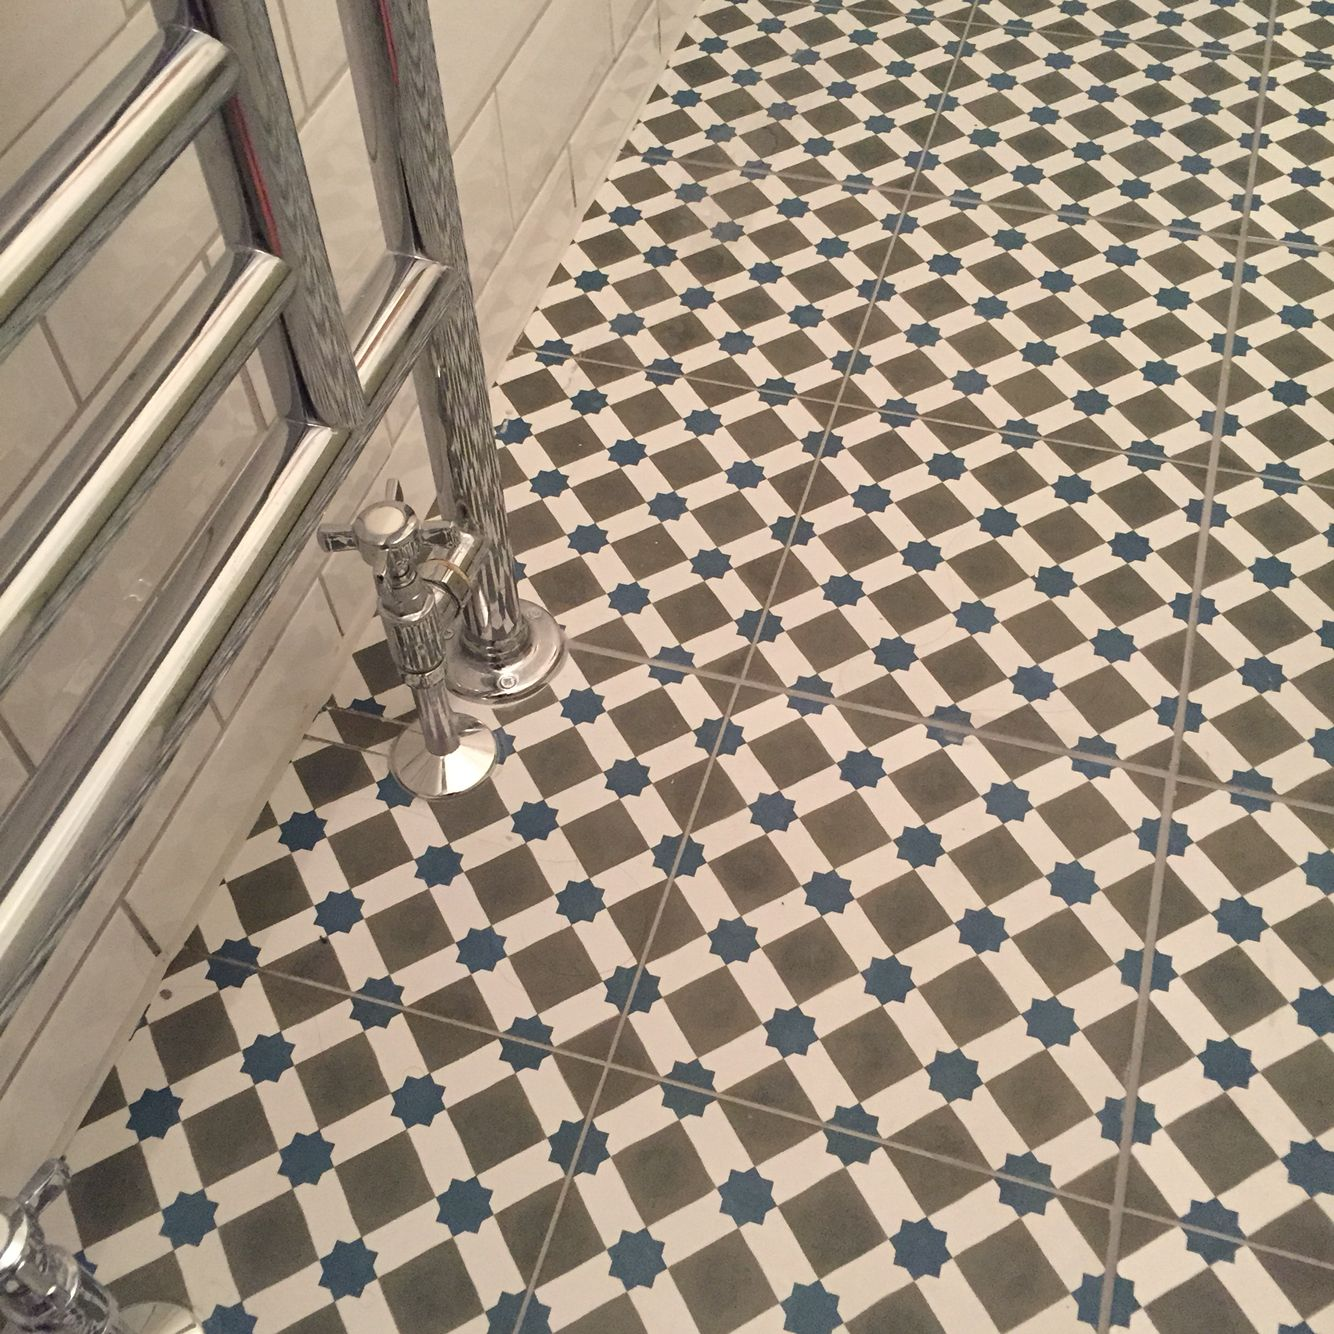 My new bathroom floor love it tiles are henley cool from topps my new bathroom floor love it tiles are henley cool from topps tiles dailygadgetfo Images